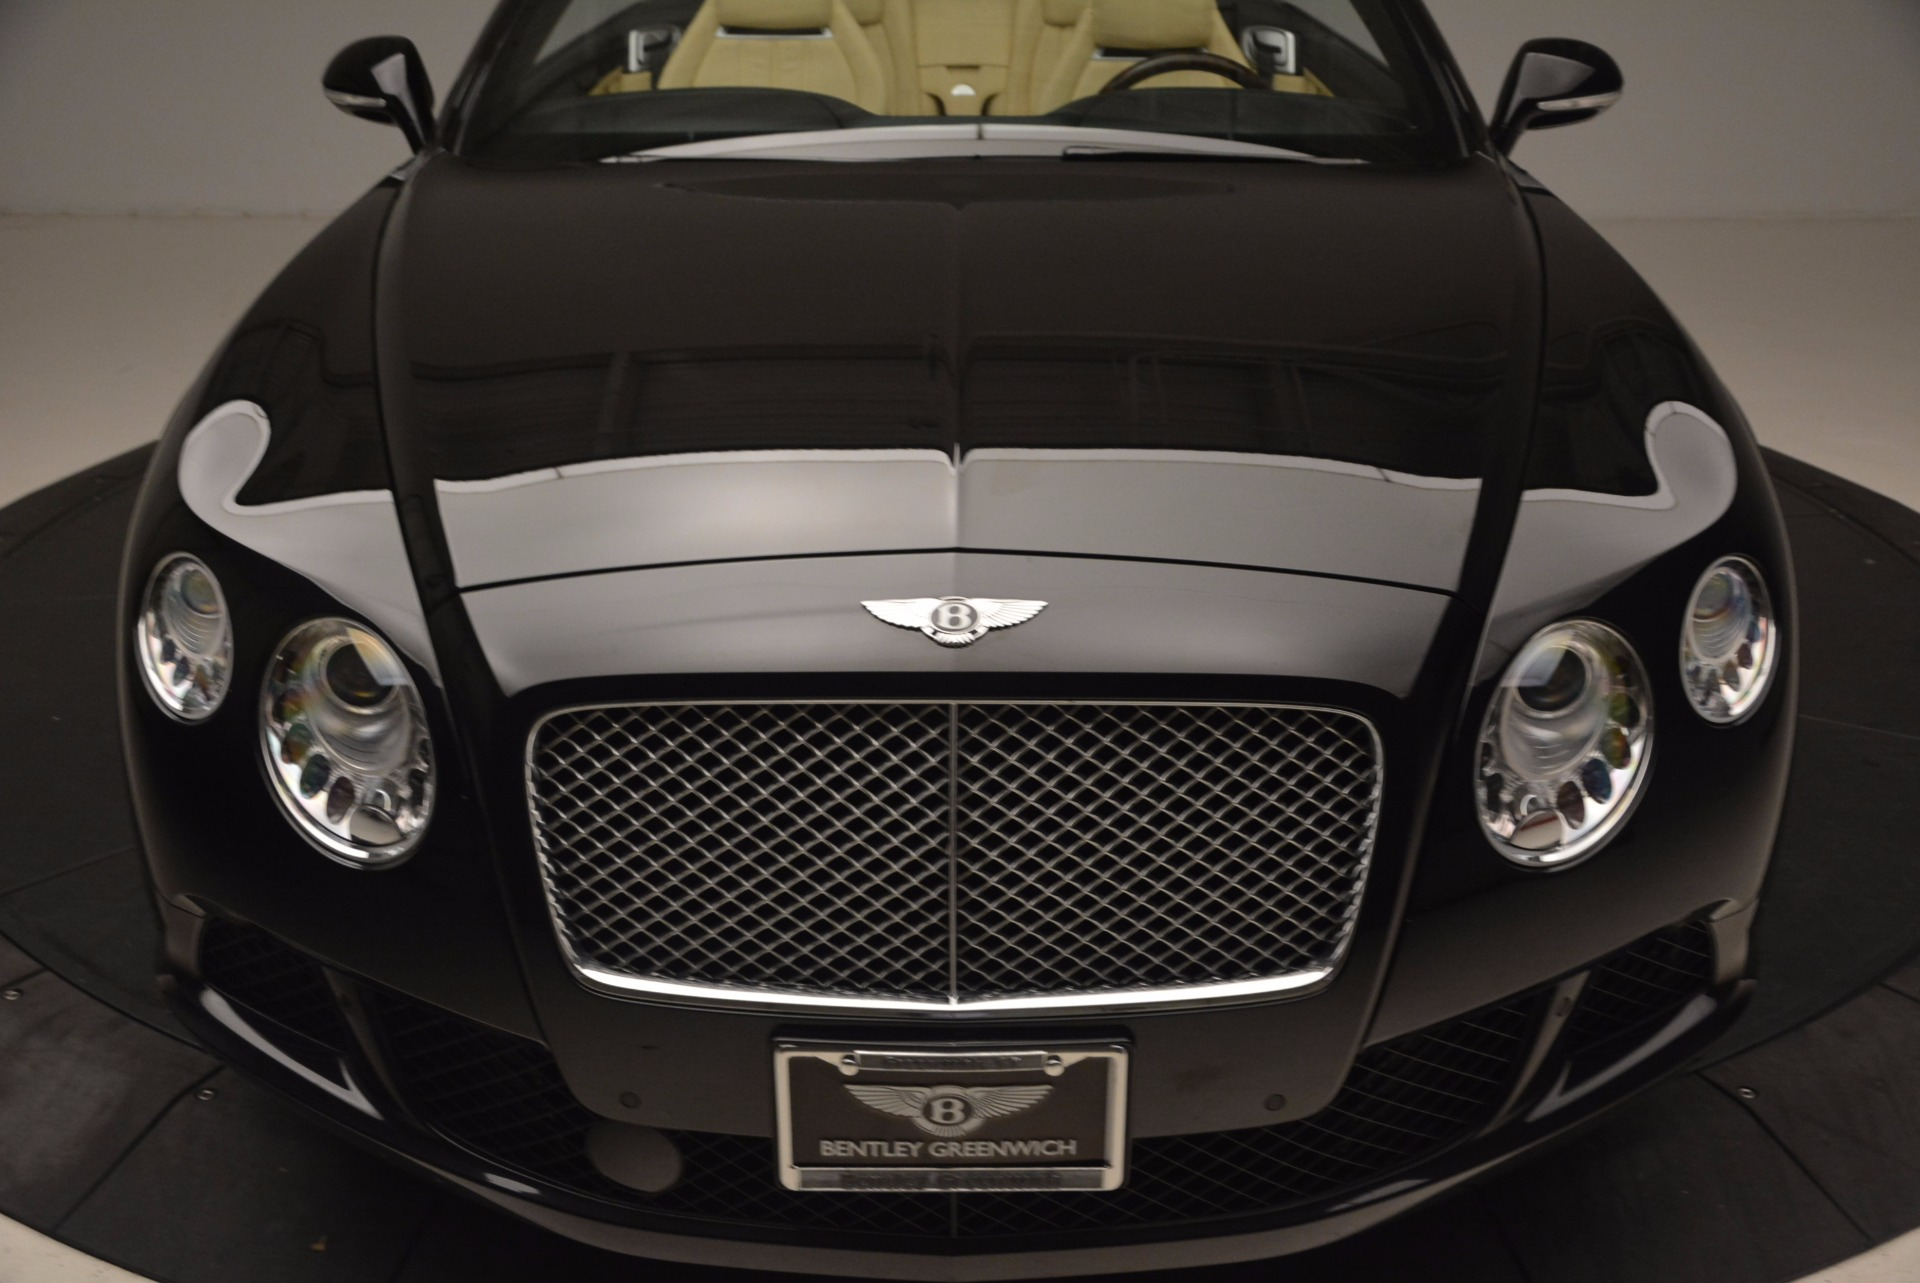 Used 2012 Bentley Continental GT W12 For Sale In Greenwich, CT 1656_p24